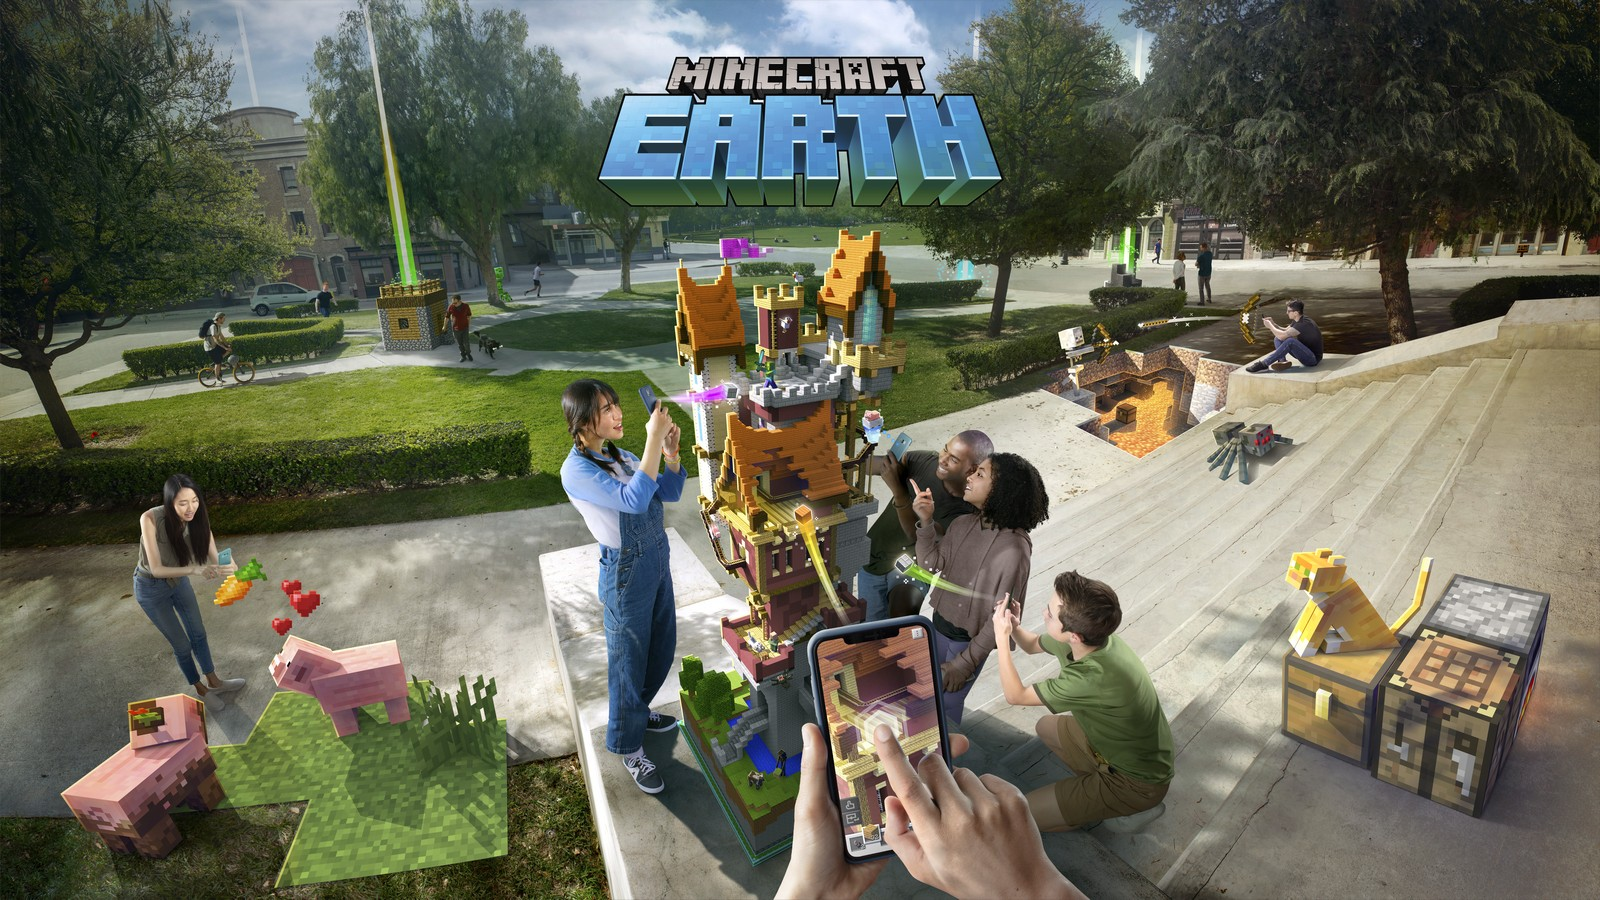 Microsoft Bringing Minecraft to the Real-World With New Minecraft Earth Game